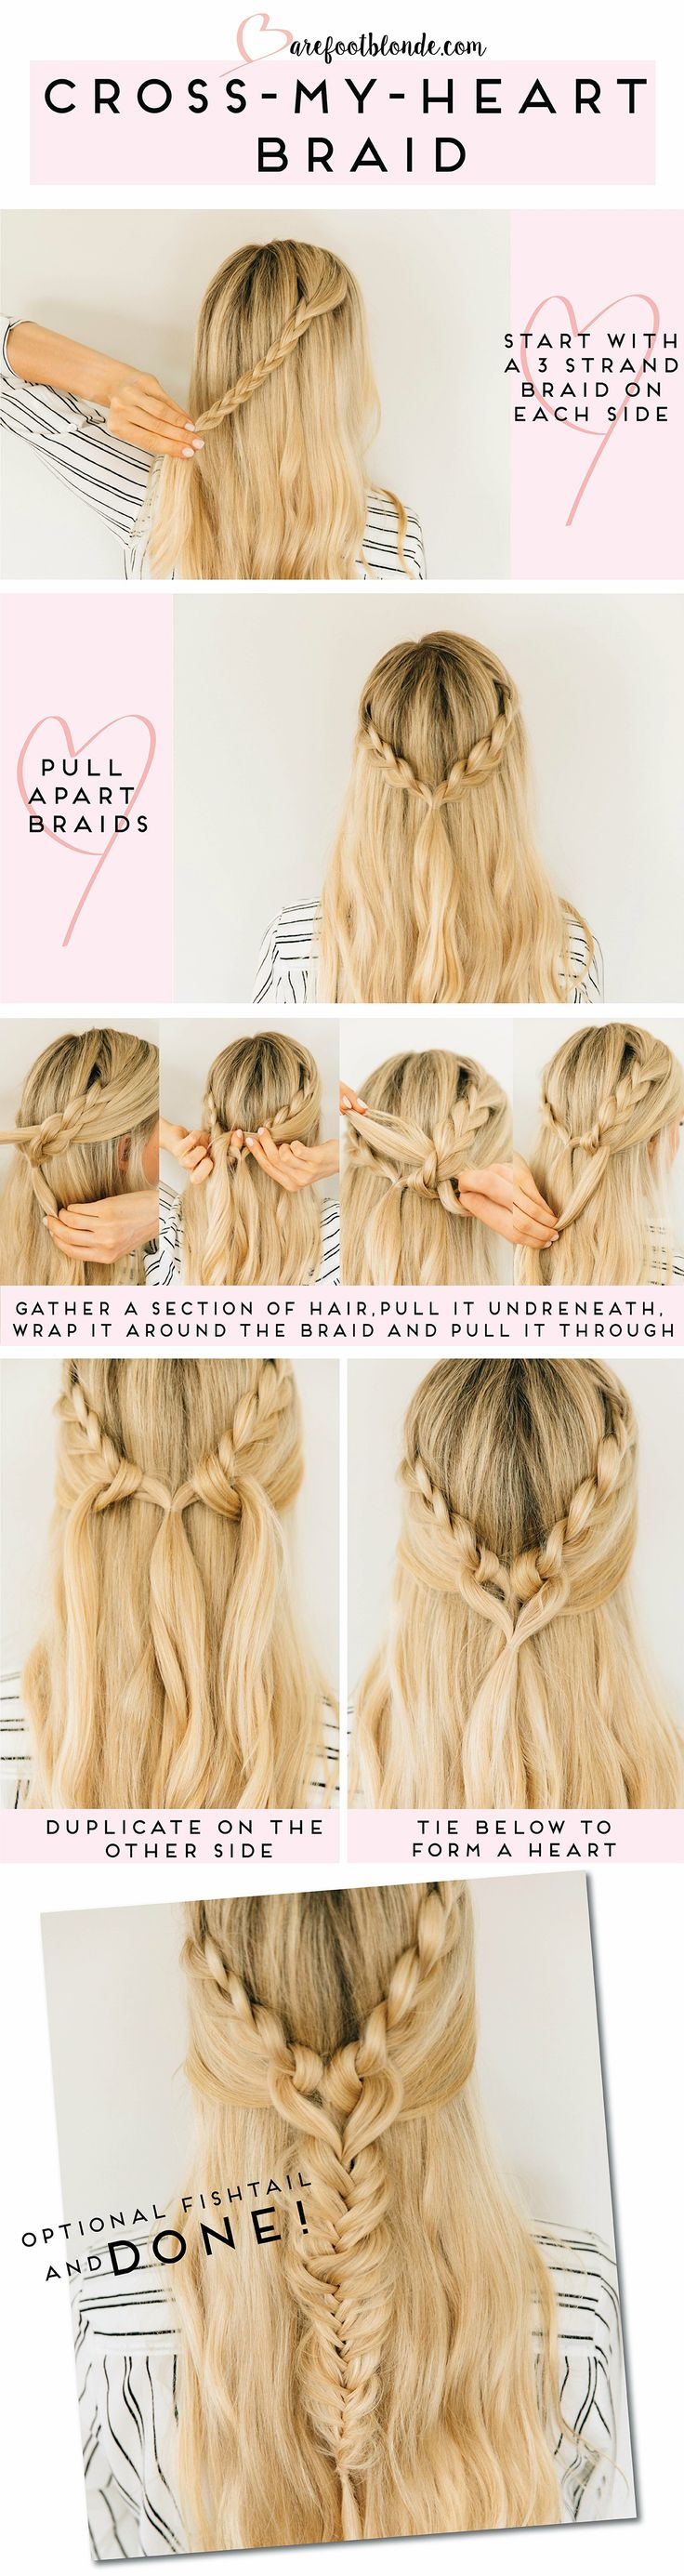 best hair styles images on pinterest